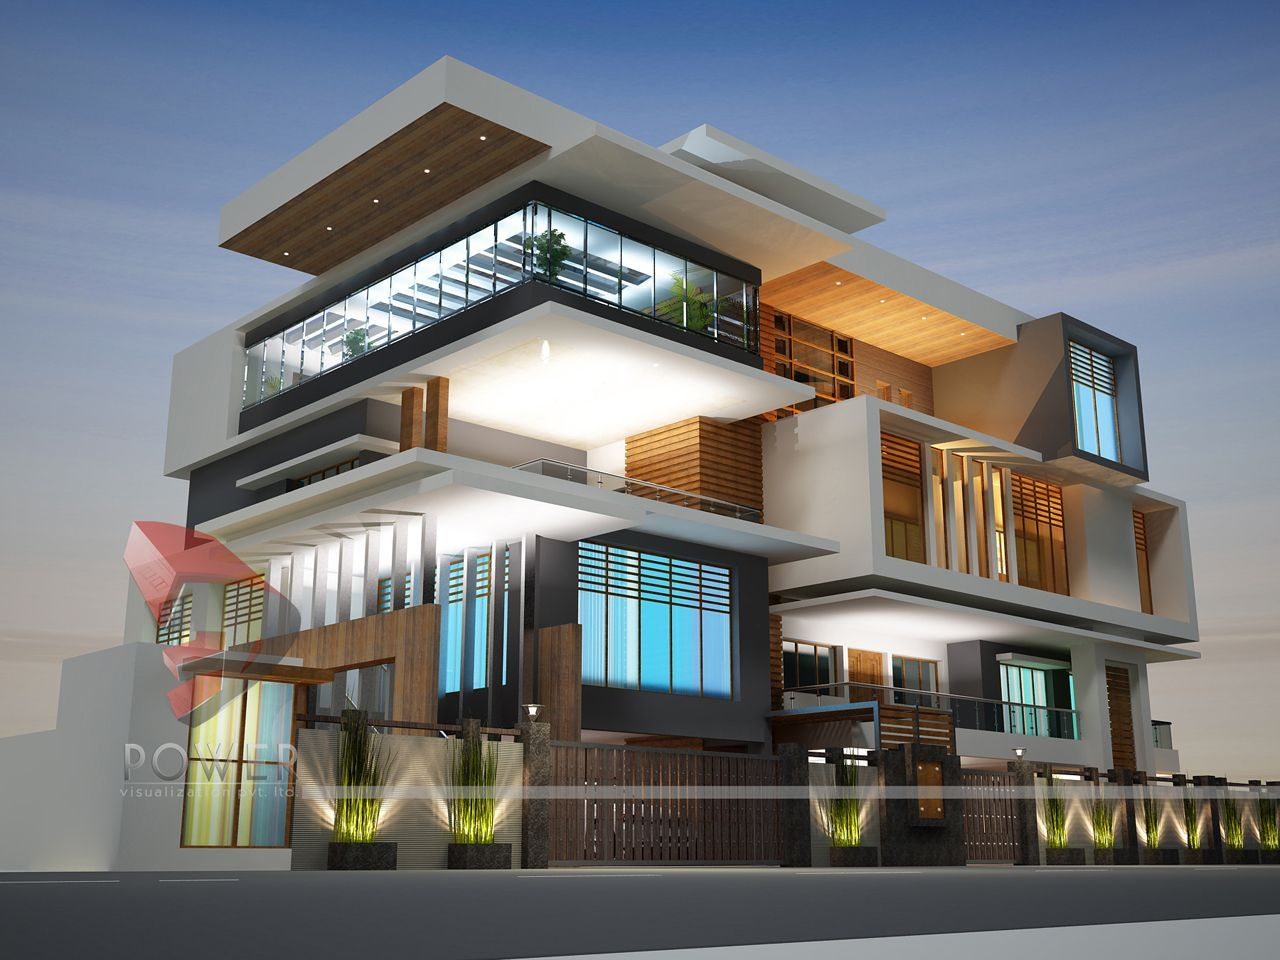 Modern house design in india architecture india modern Indian modern house